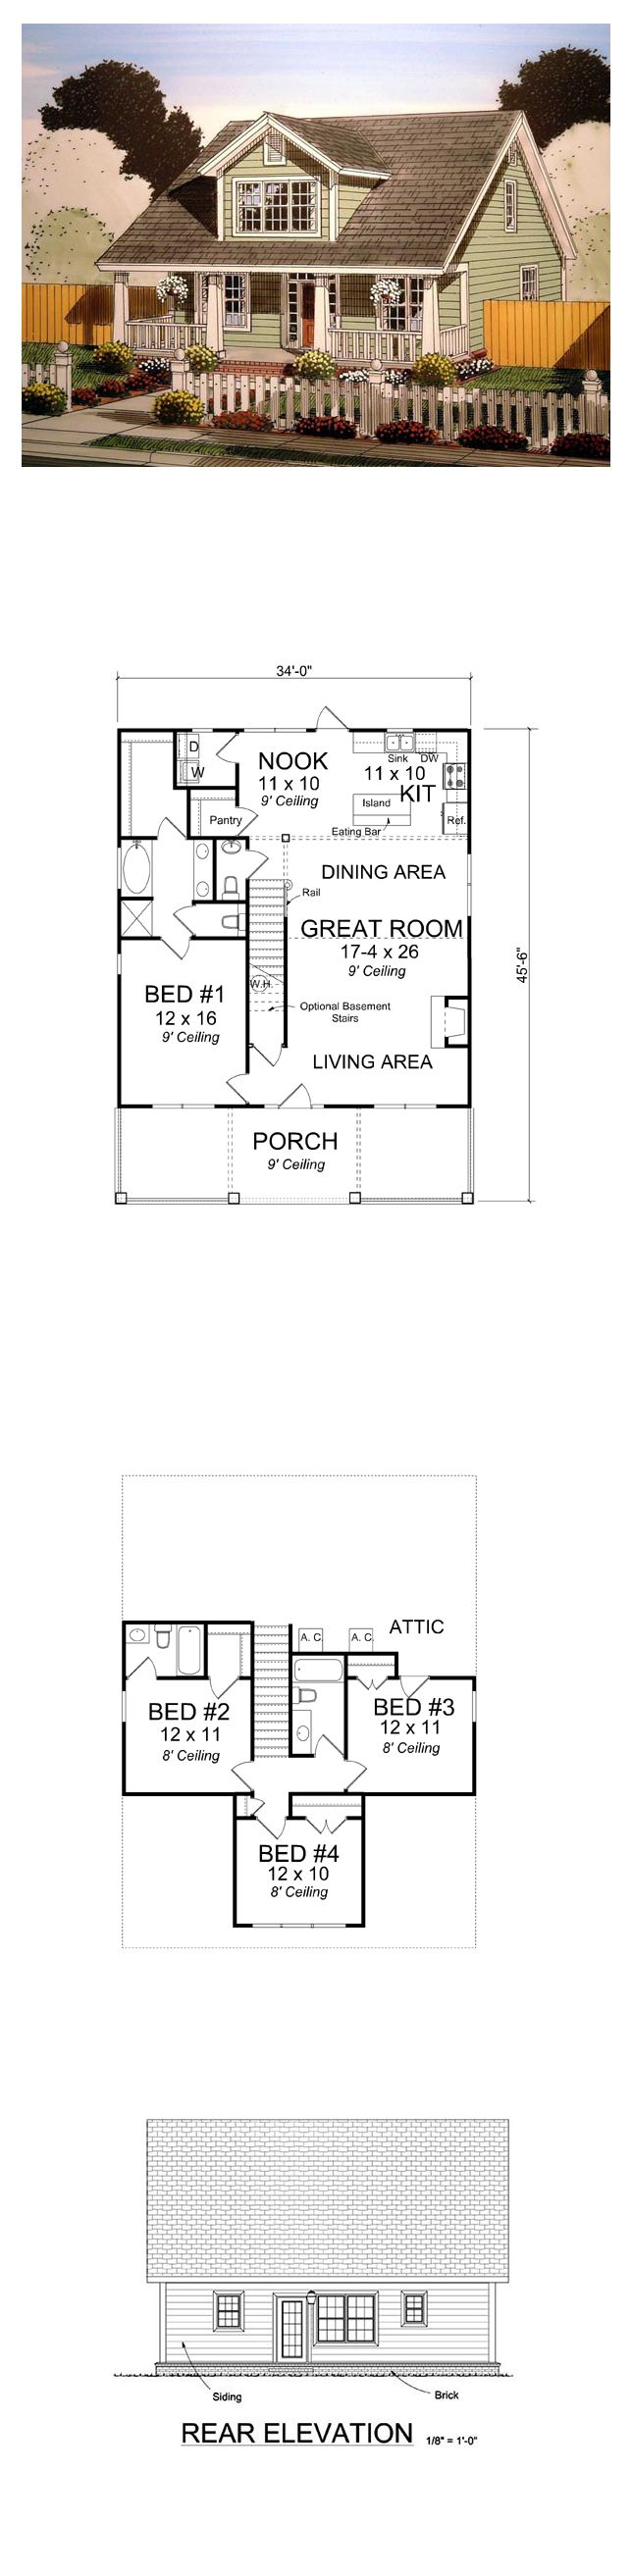 Cape Cod House Plan 61403 | Total Living Area: 1871 sq. ft., 4 bedrooms 3.5 bathrooms. #houseplan #capecodstyle